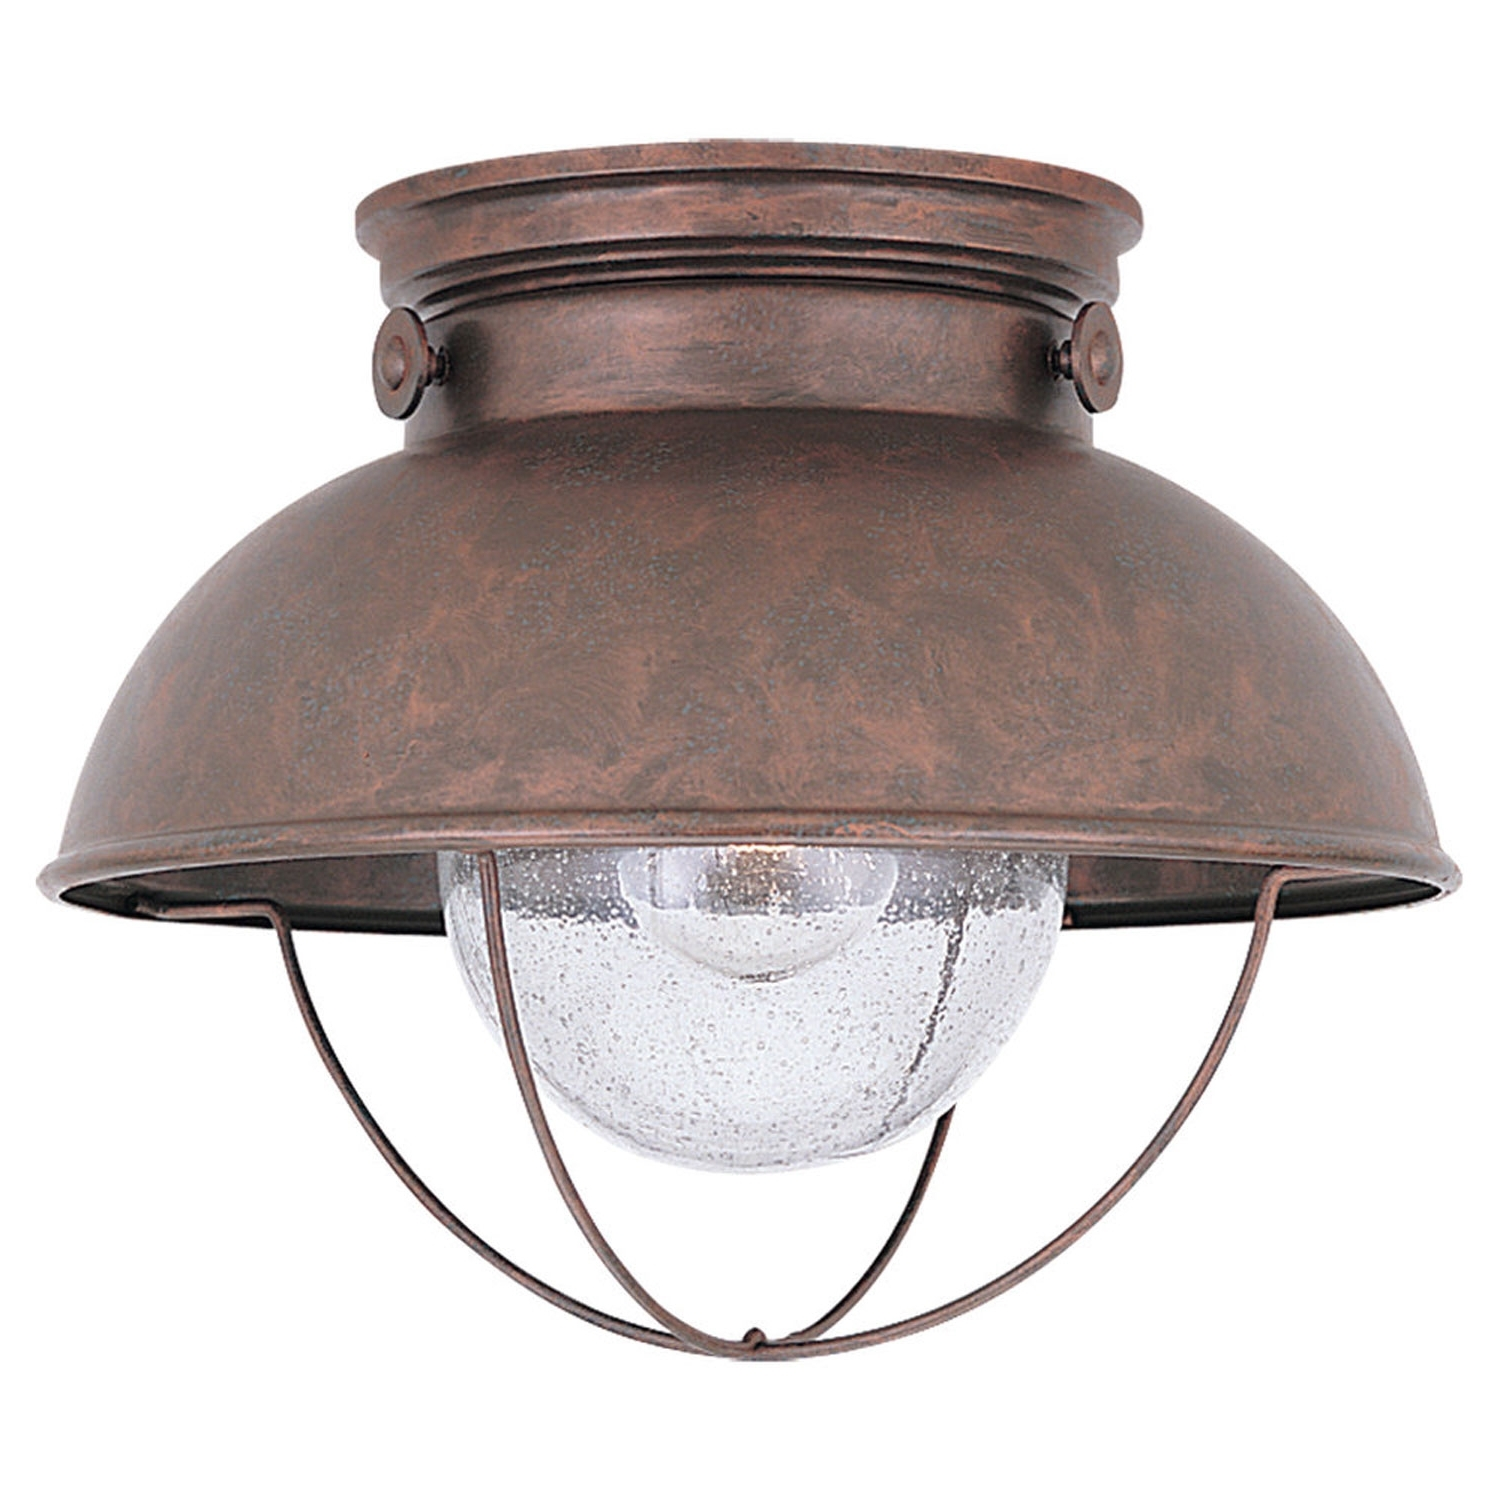 Outdoor Ceiling Lighting (View 14 of 20)